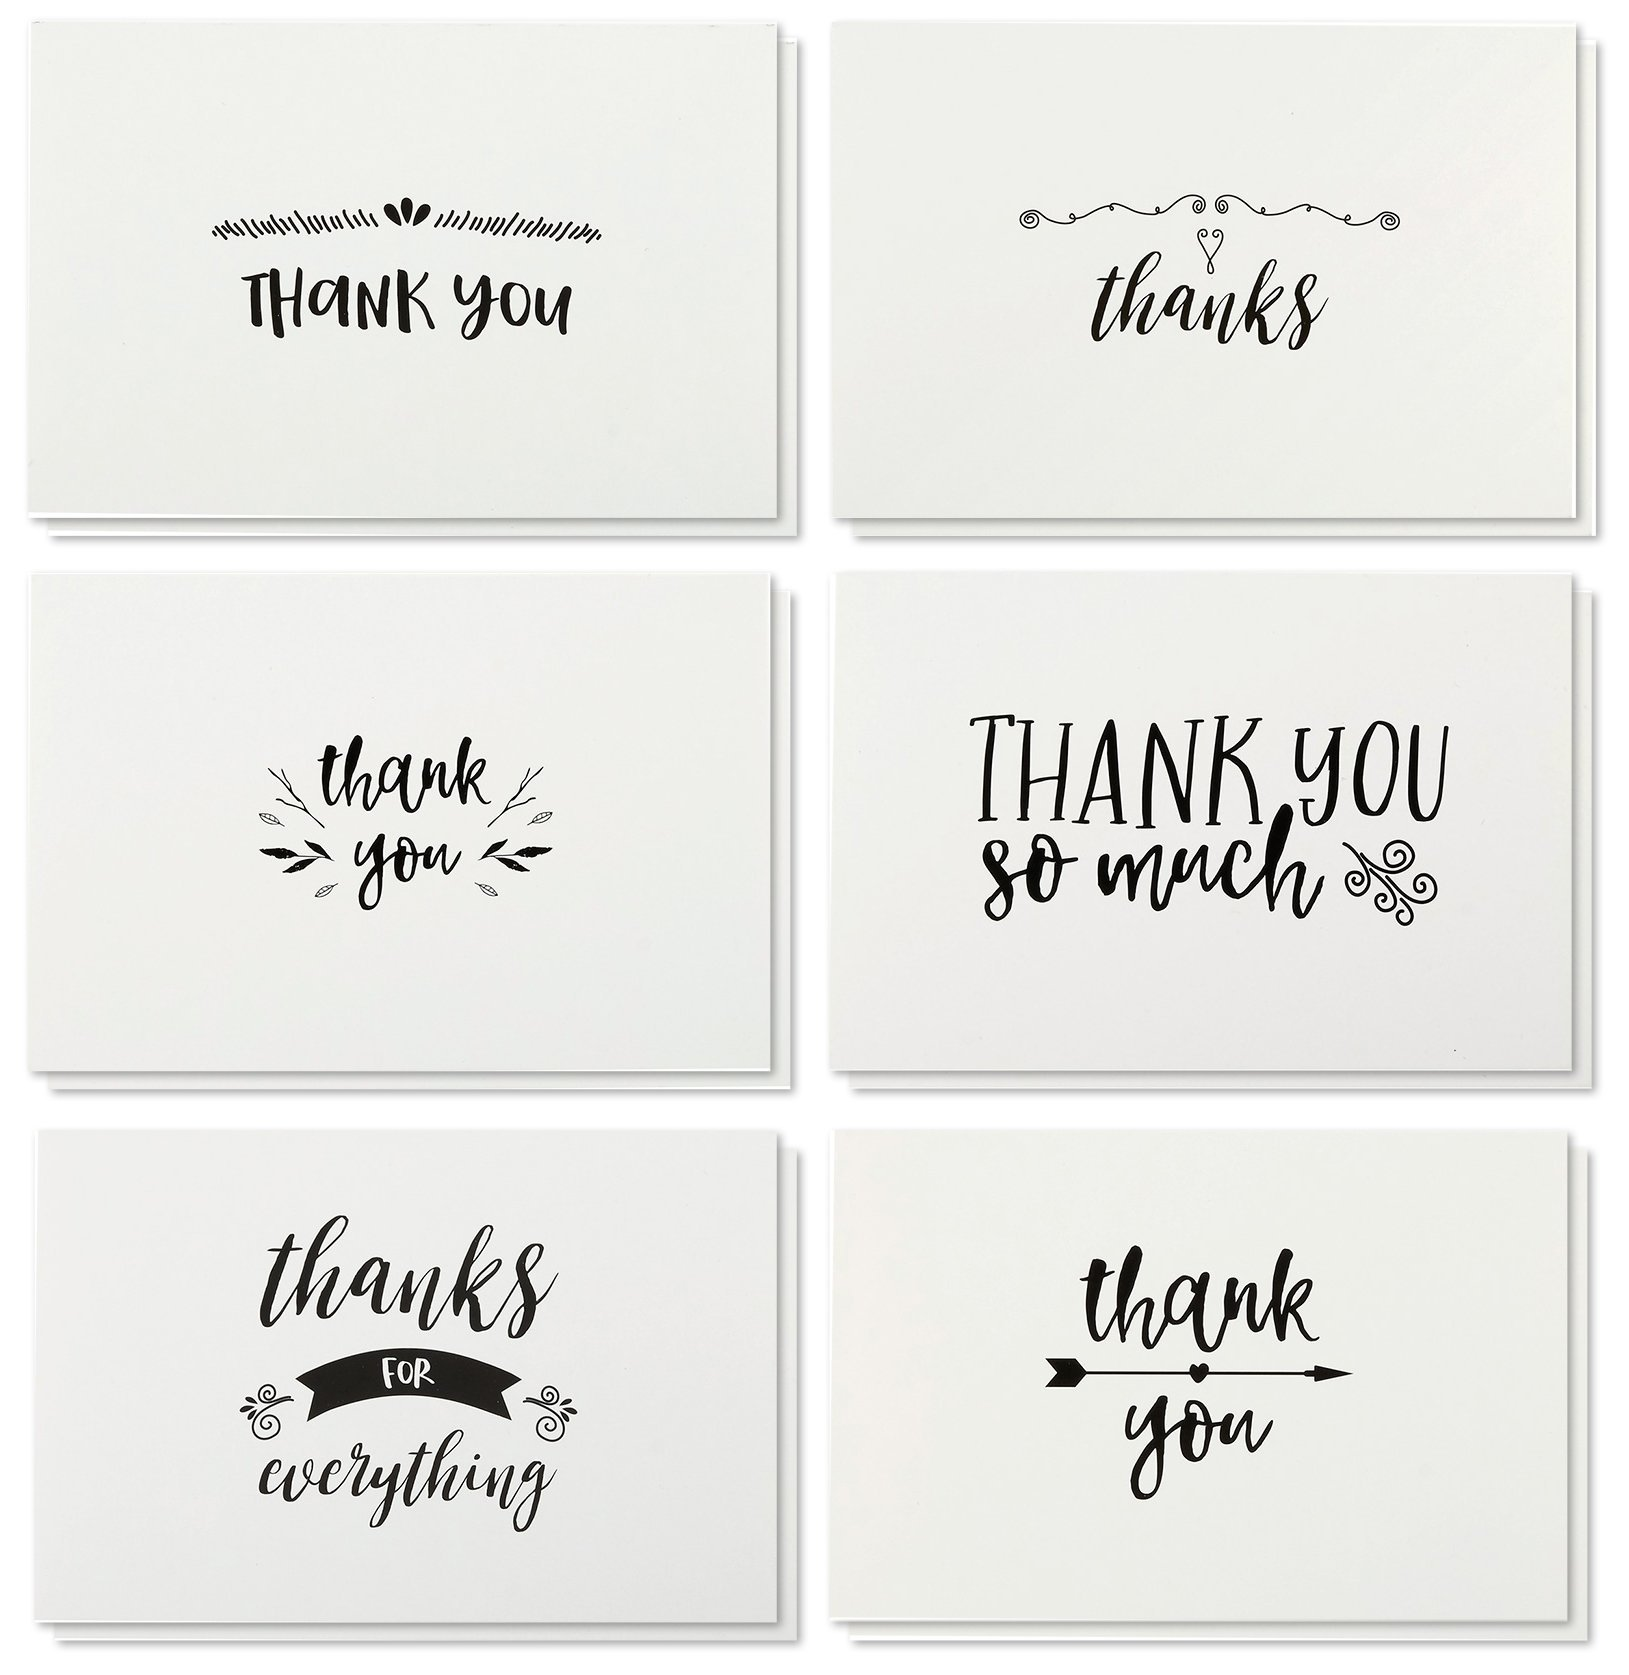 Amazon.com: Simple Thank You Blank Cards, 36 count - Gray Envelopes ...